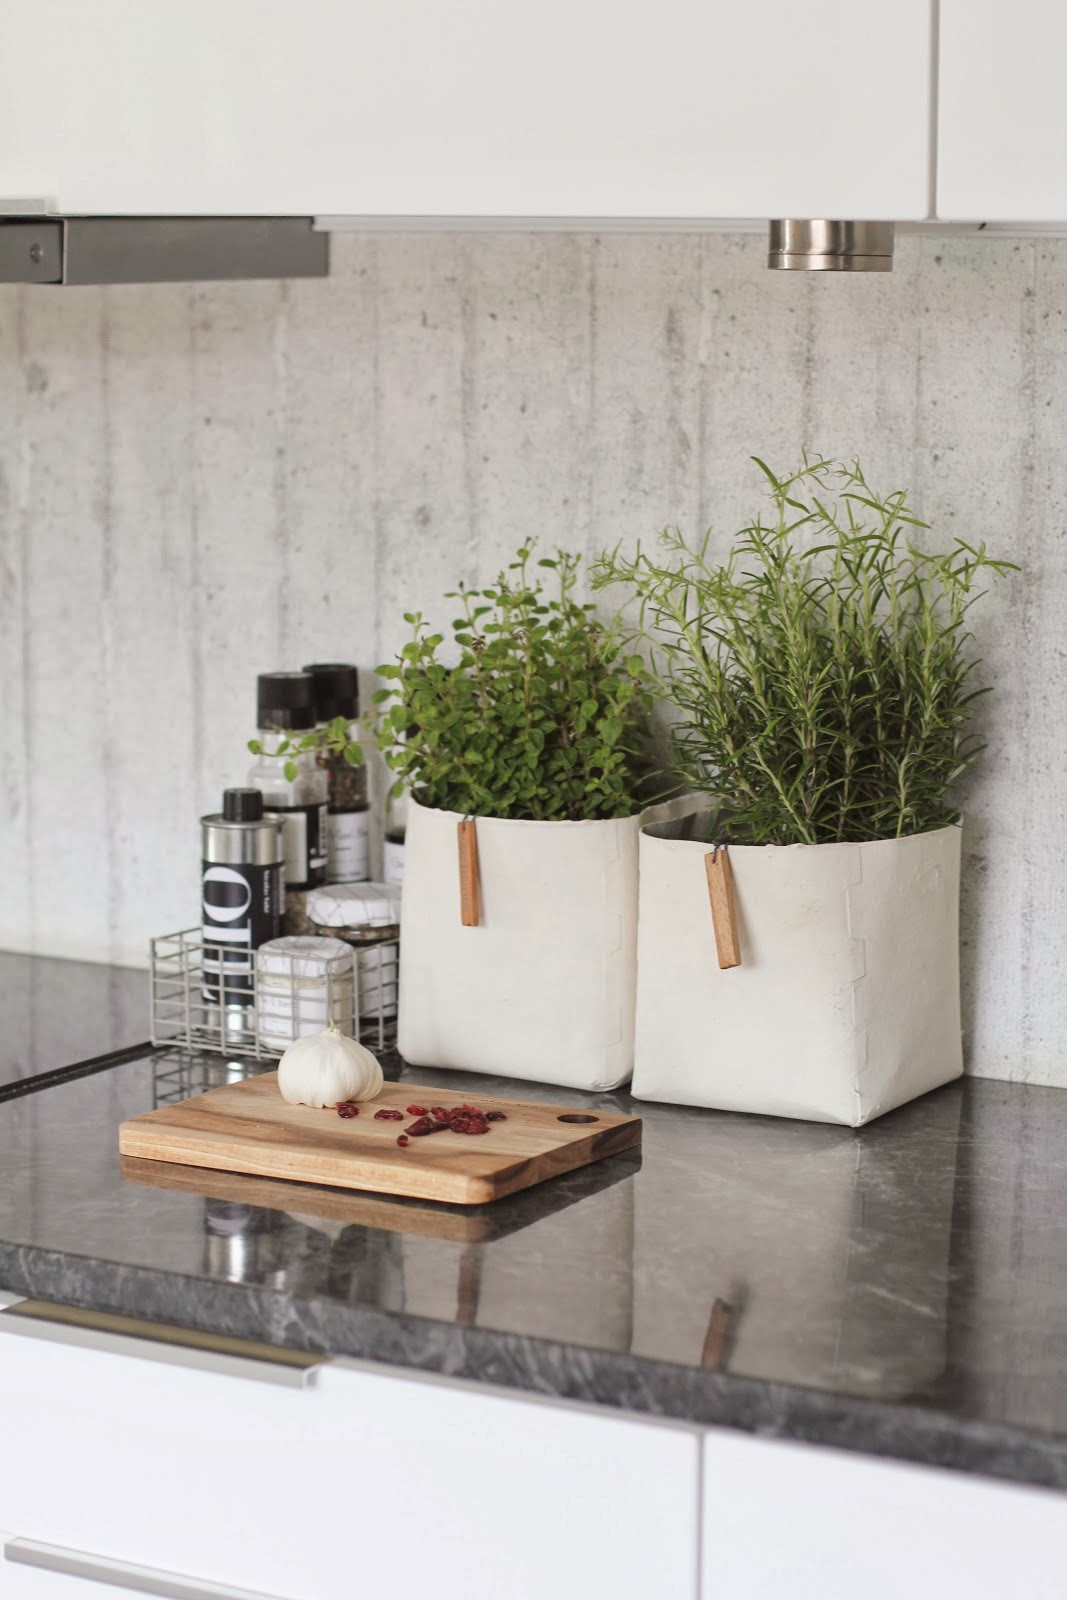 T d c interior styling kitchen corners for Decoratie vensterbank keuken